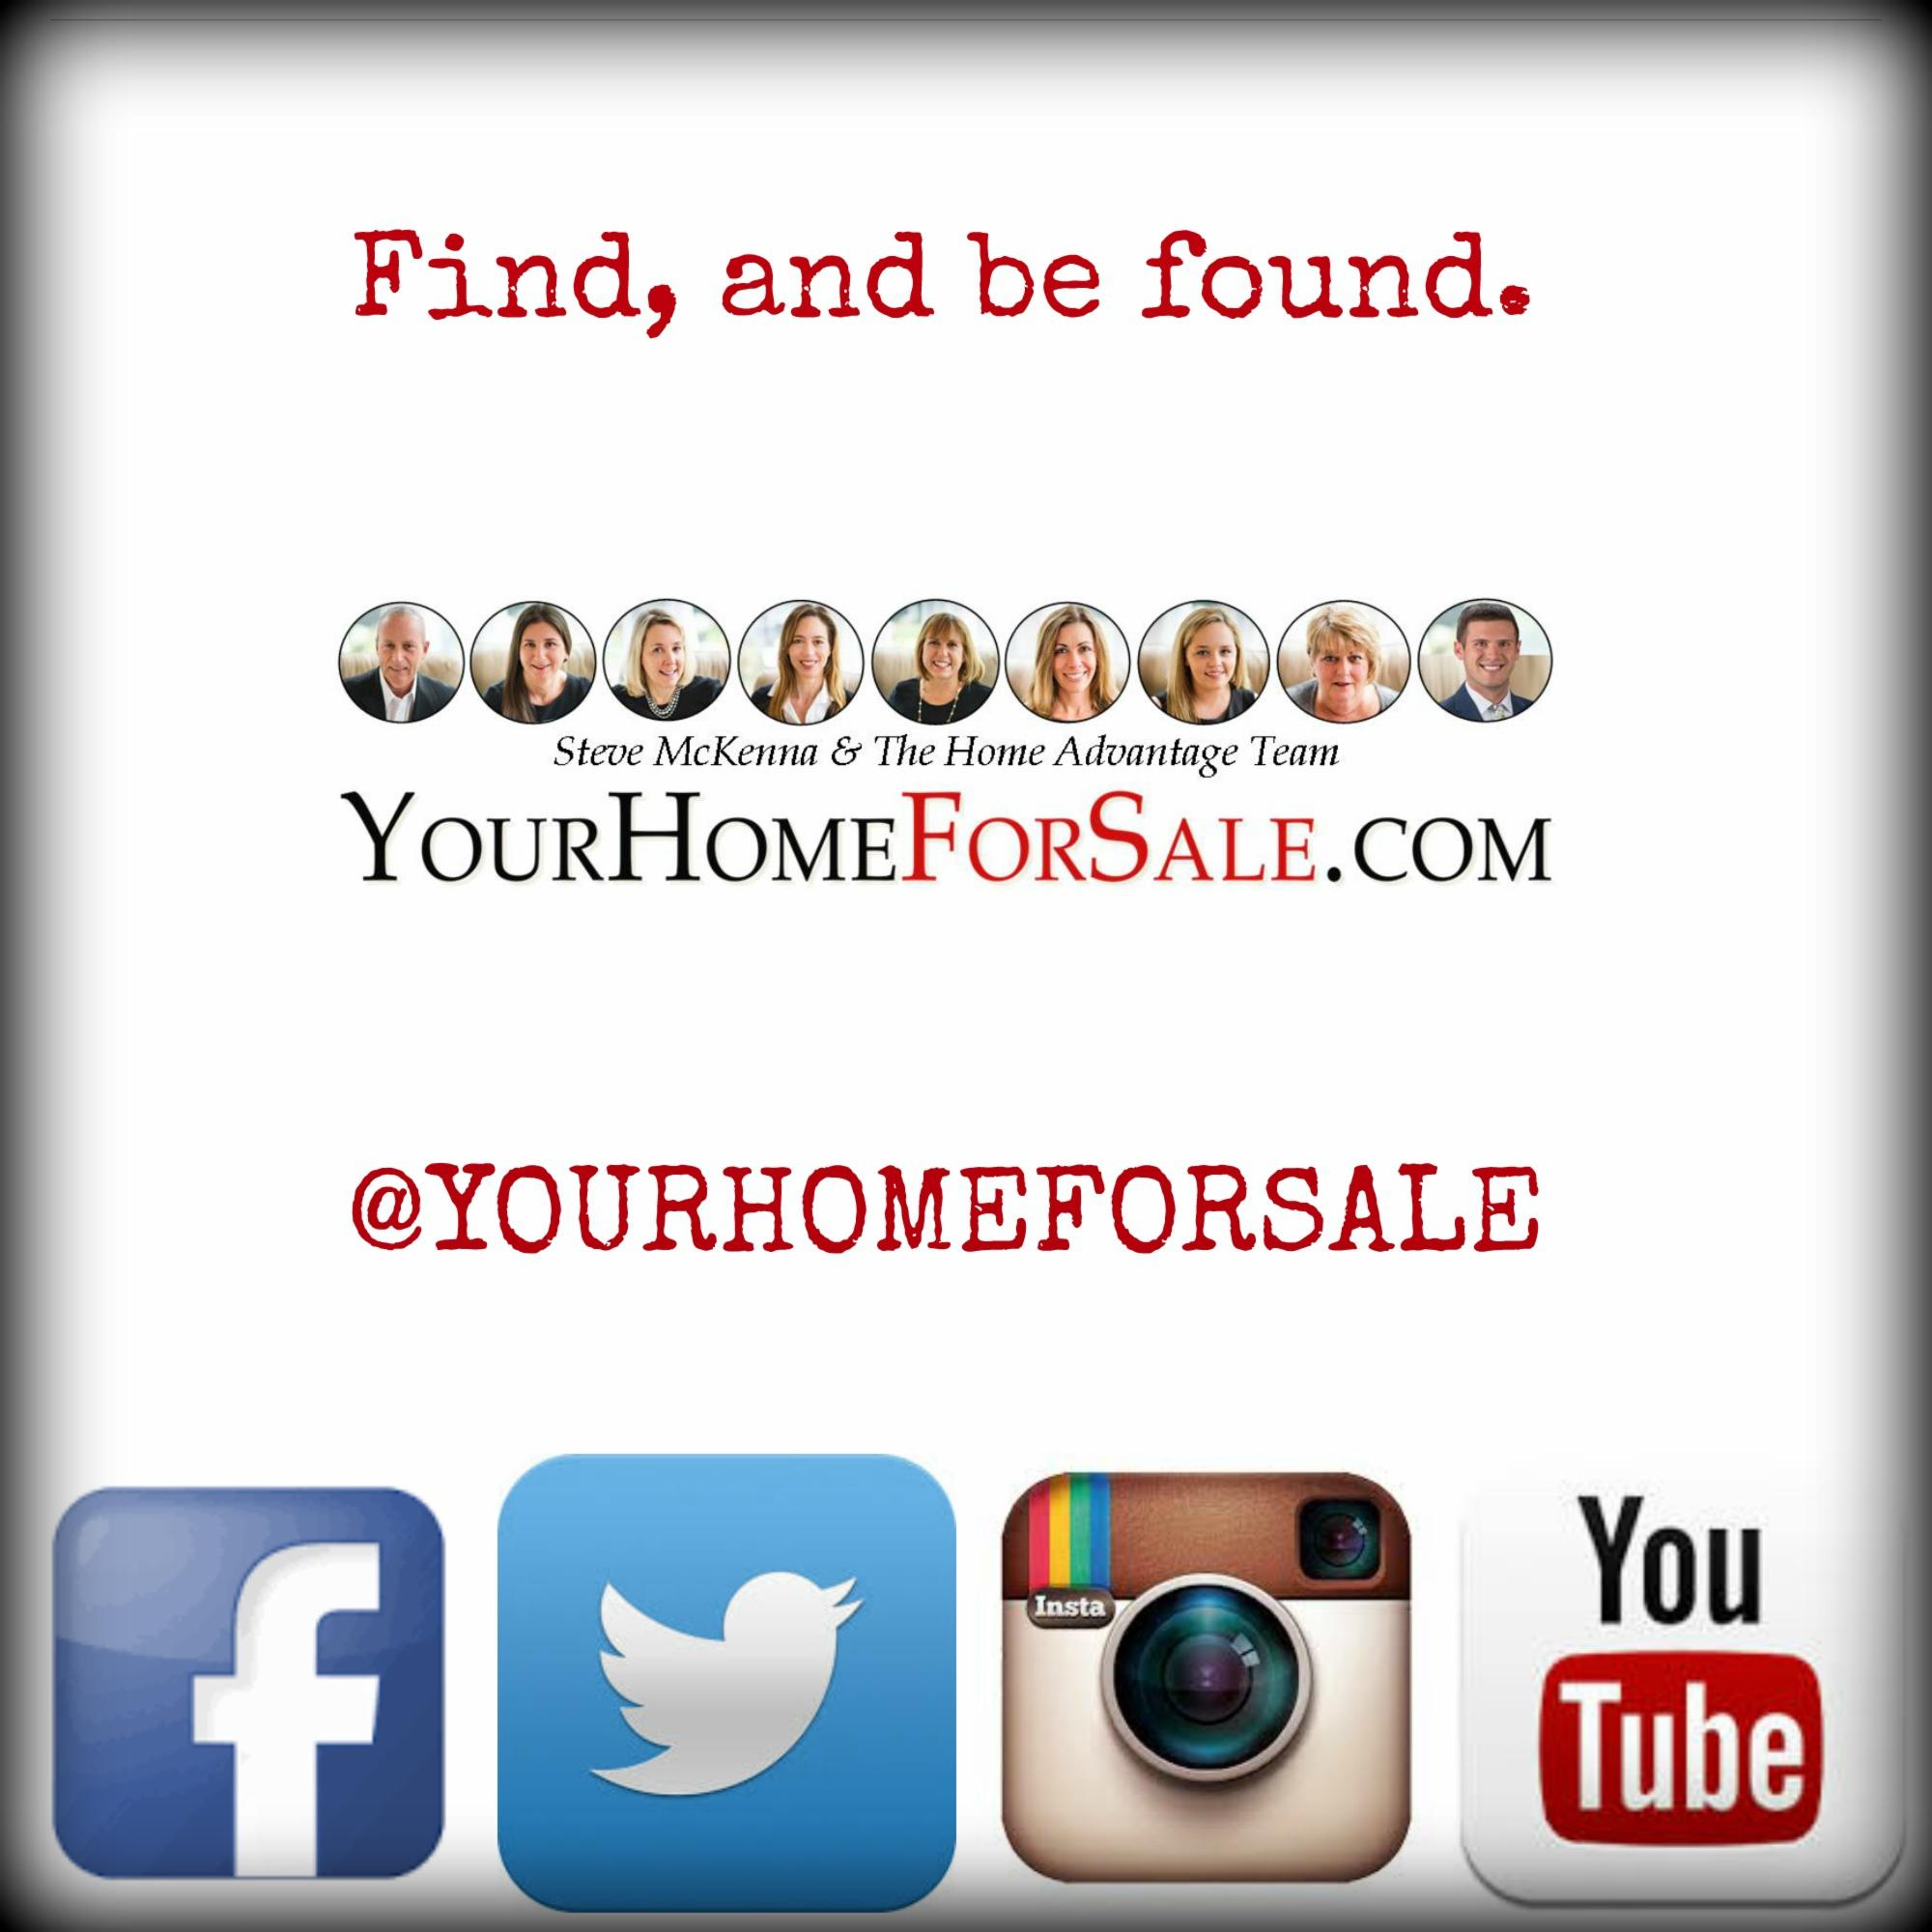 Find and Be Found, with Steve McKenna & The Home Advantage Team